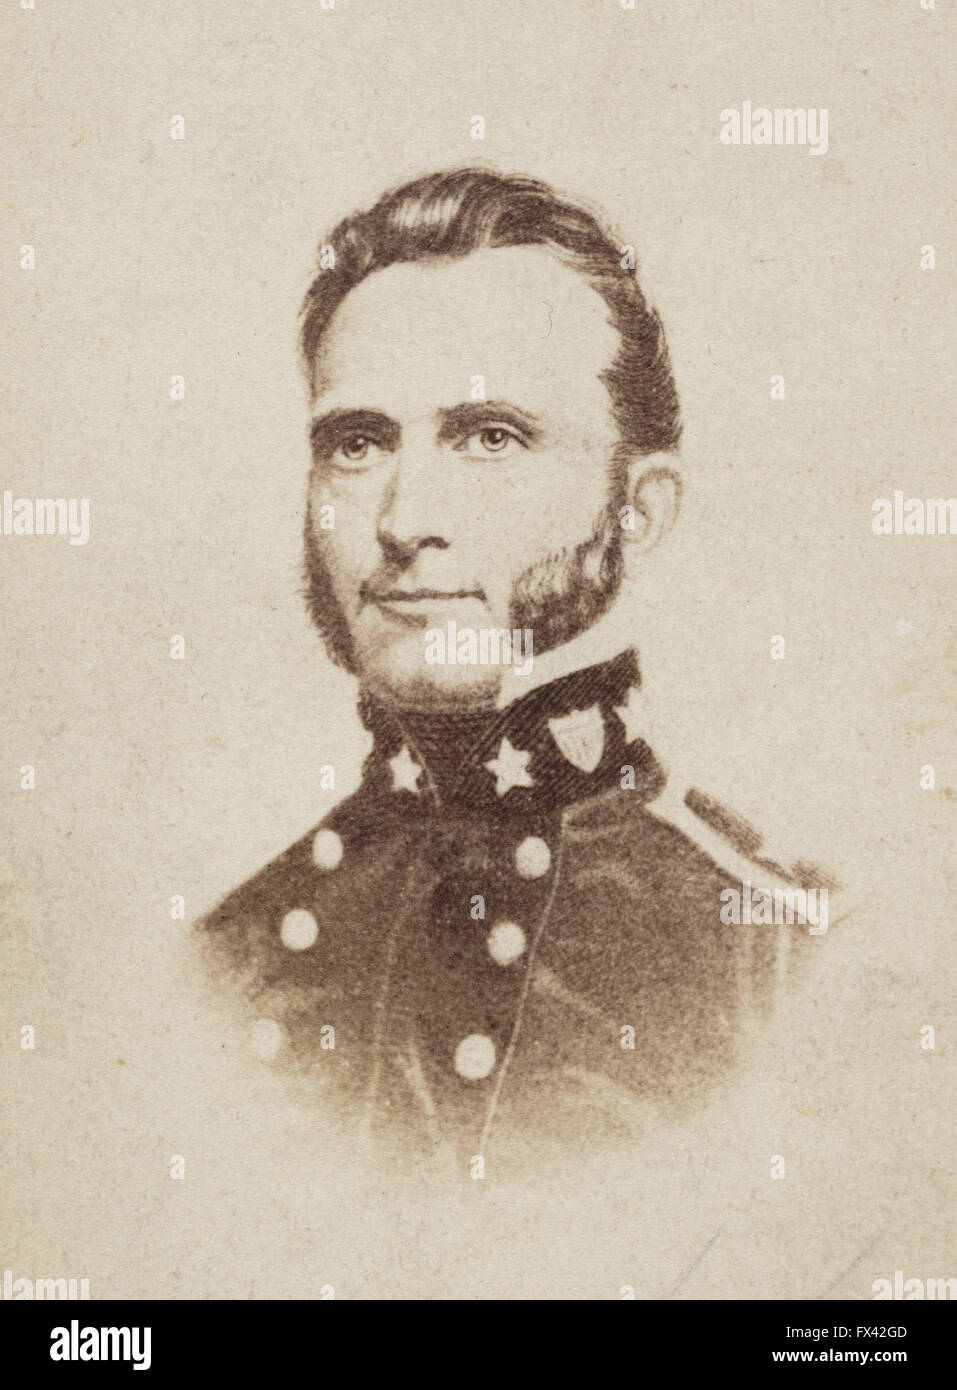 General 'Stonewall' Jackson, Confederate general during the American Civil War. General Thomas Jonathan - Stock Image